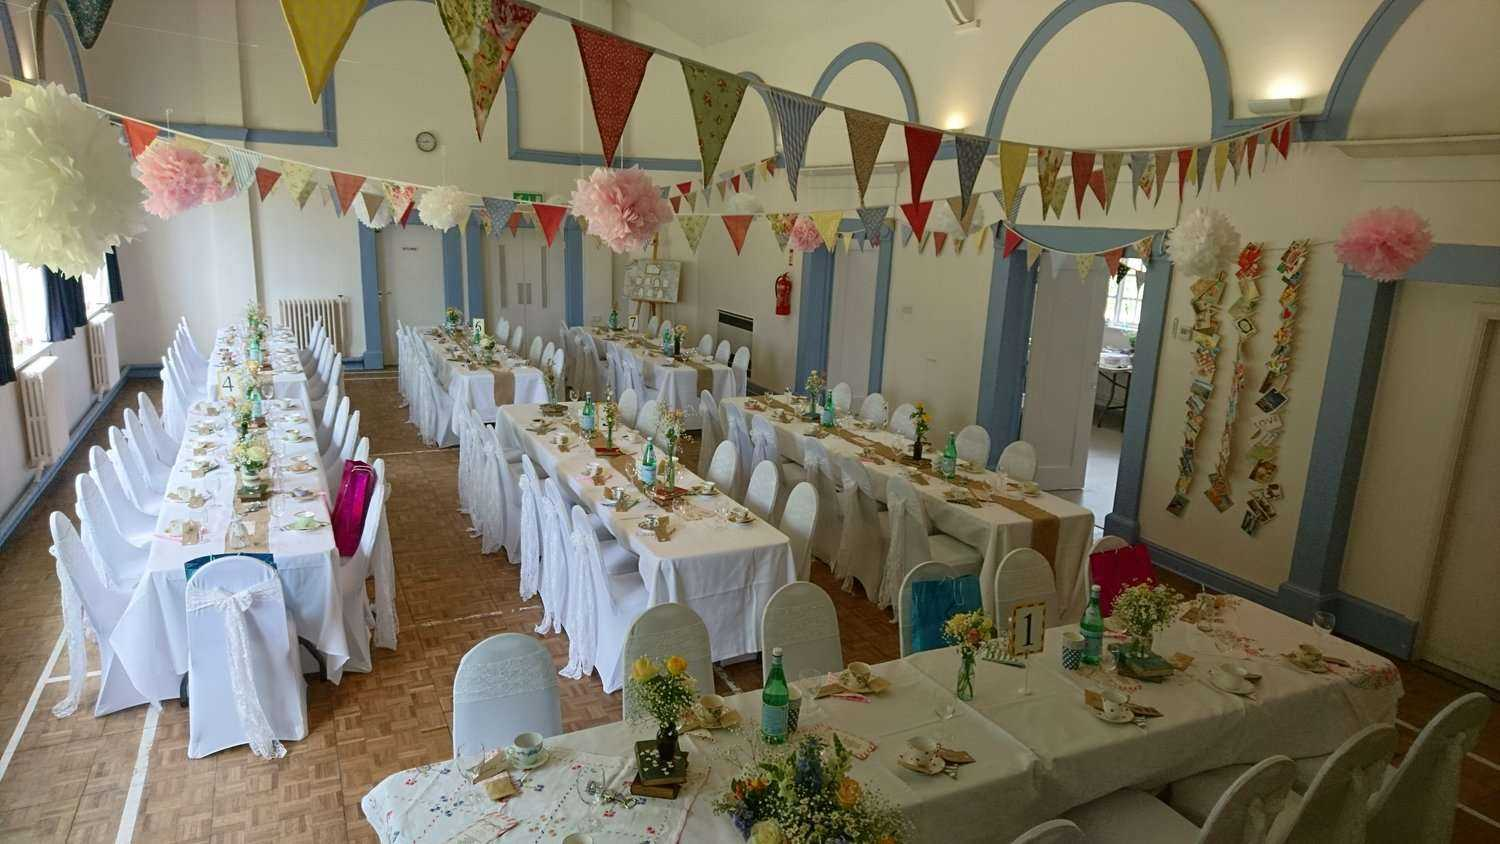 Wedding receptions gladstone village hall the hall can accommodate up to 80 guests for a sit down formal reception increasing to a strict fire regulation maximum of 120 for an evening celebration junglespirit Choice Image